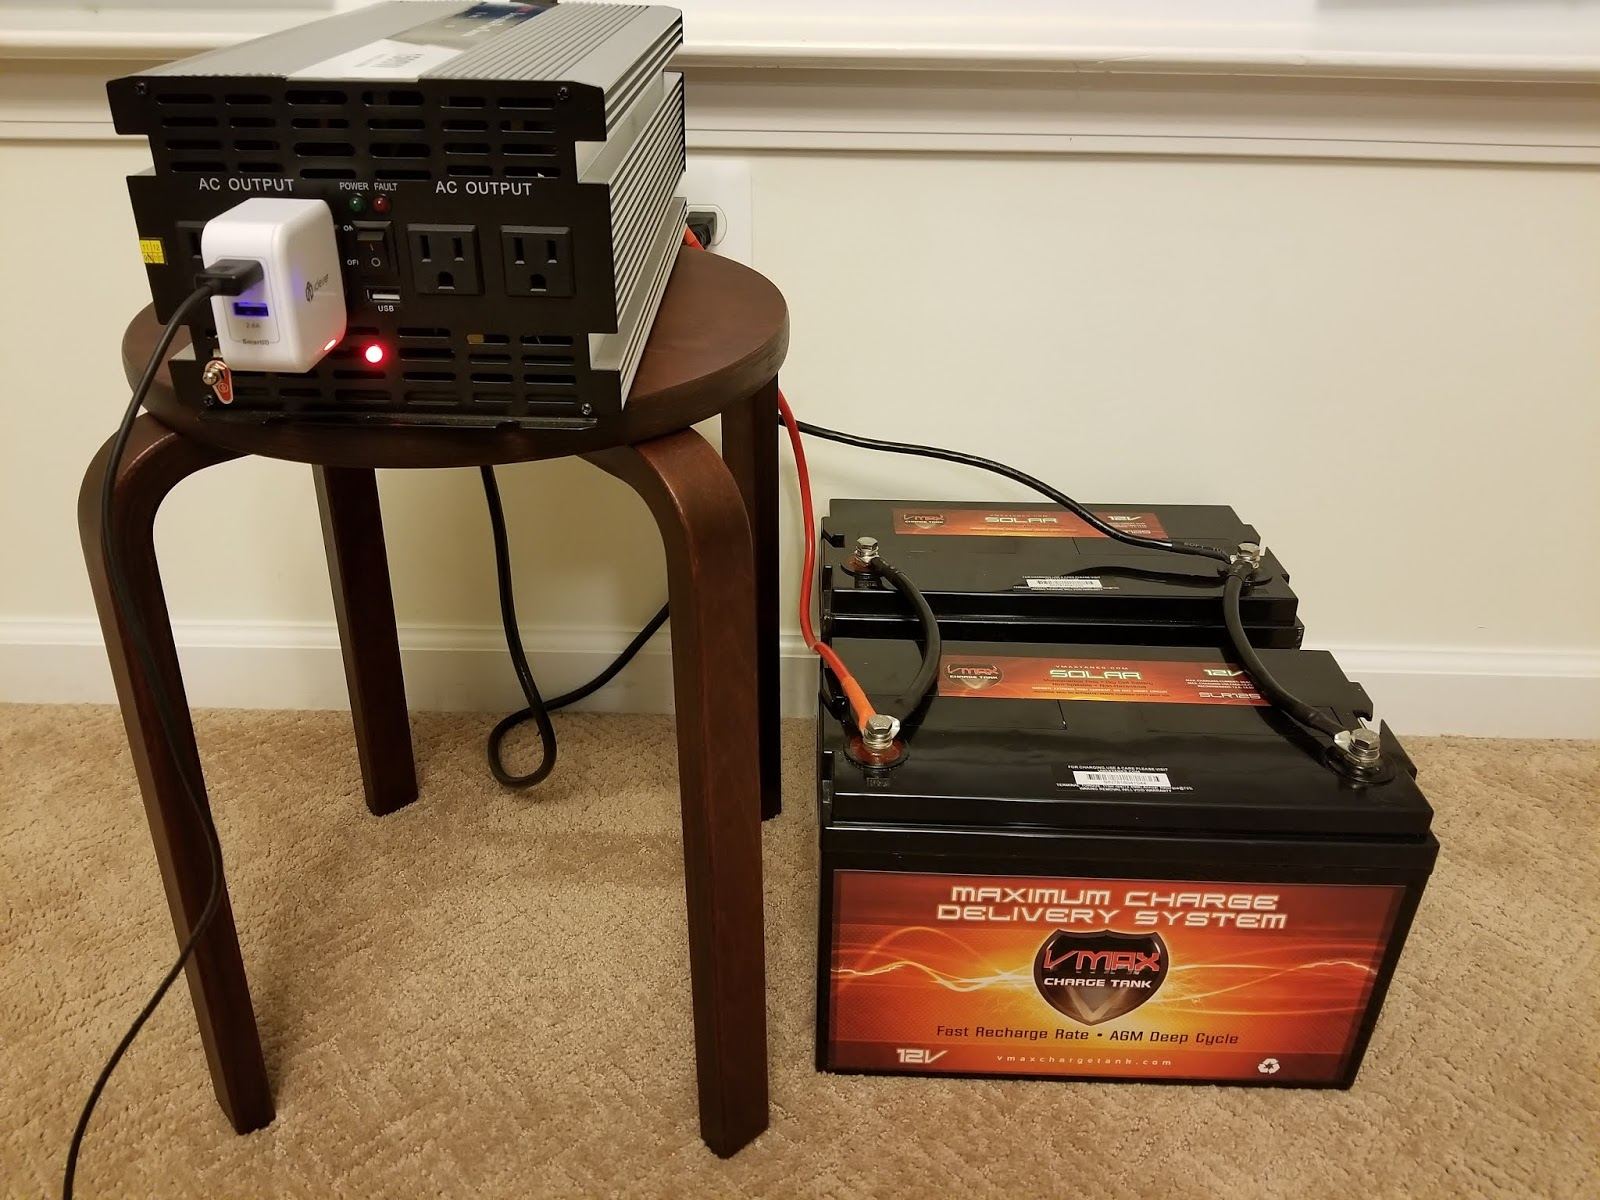 Bargains.com Blog: How to size your battery bank: Home ... on